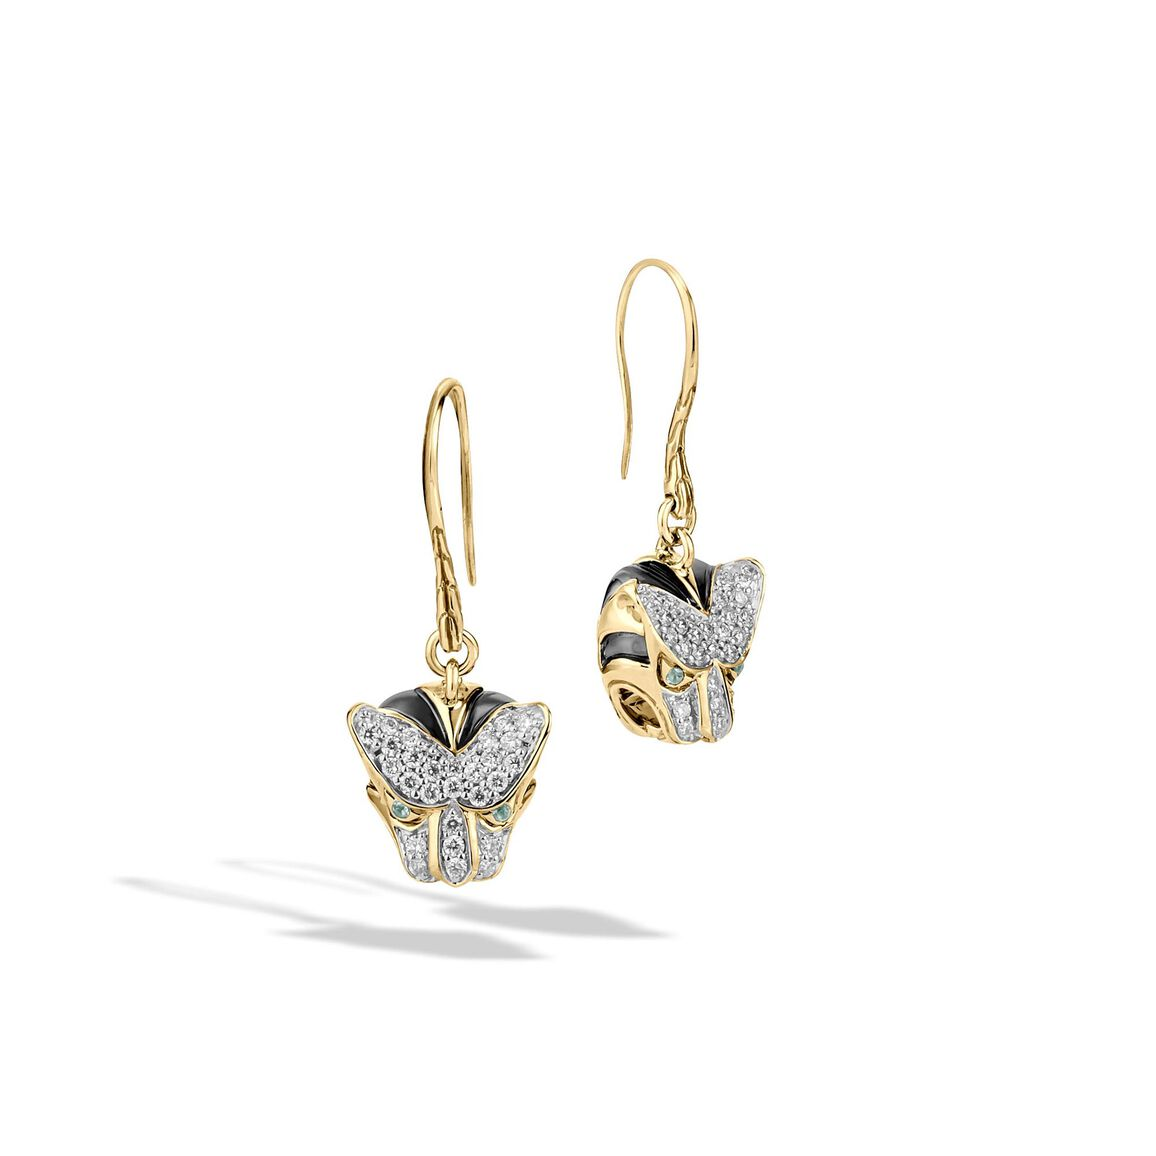 Legends Macan Drop Earring in 18K Gold with Diamonds